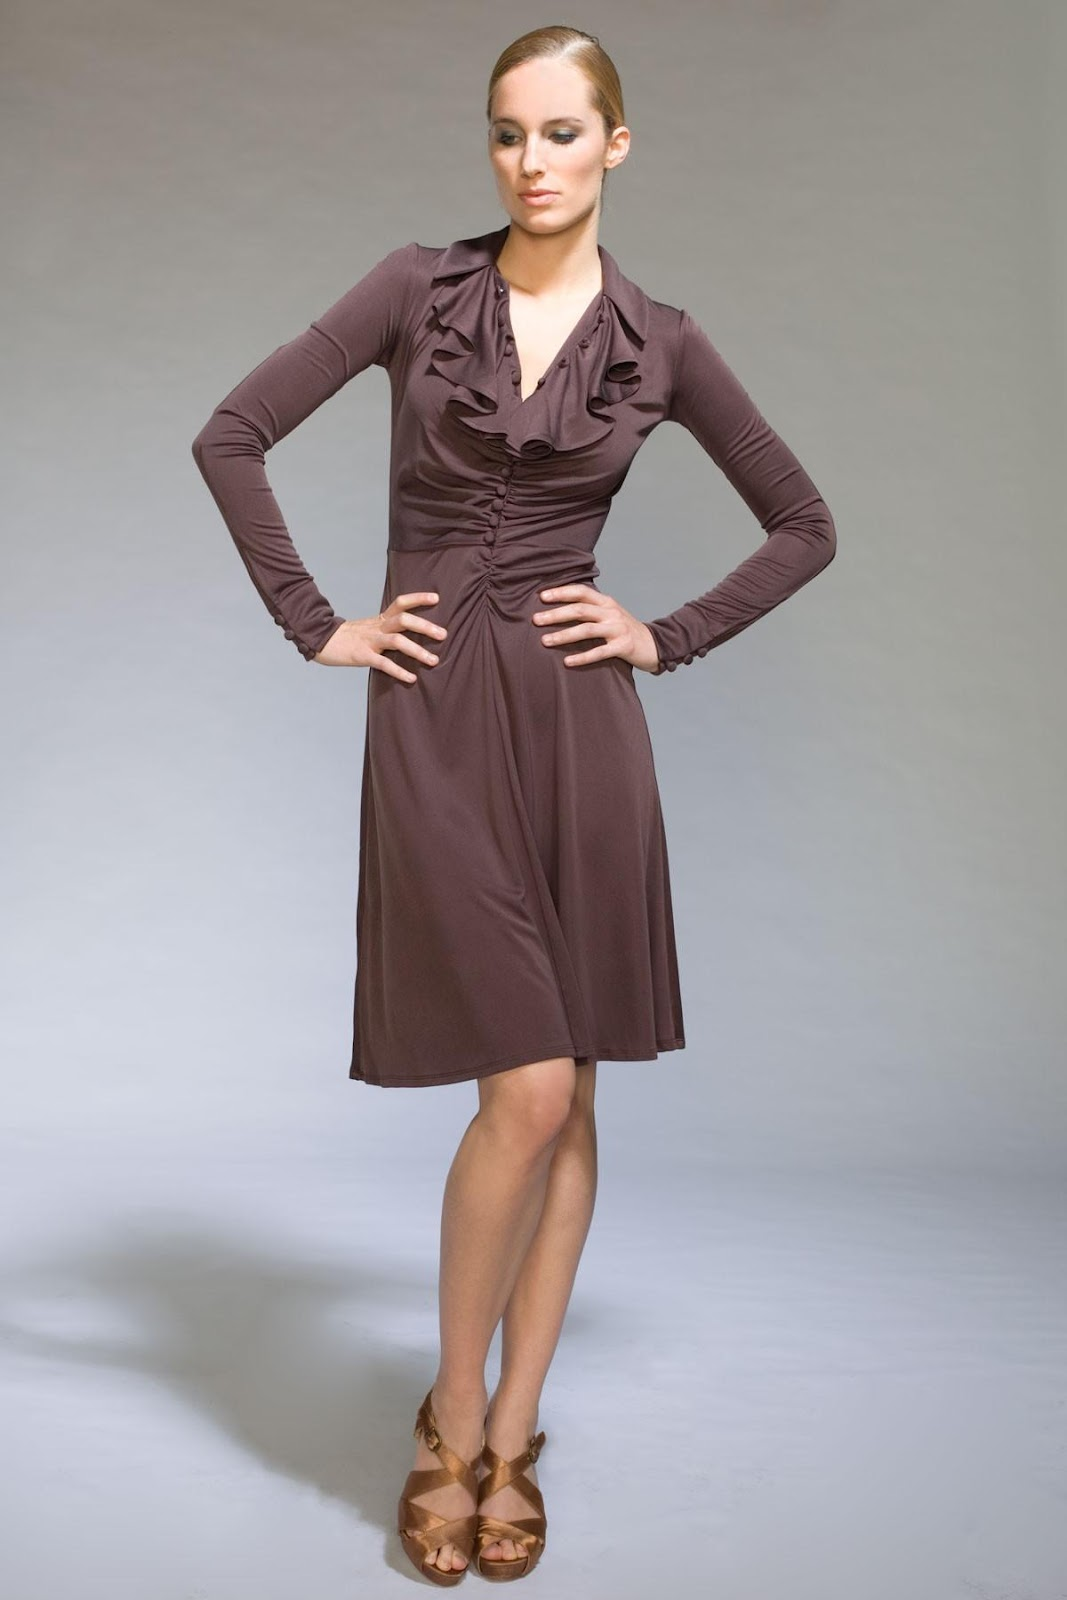 Silk Jersey Dress Jill Braun from jillbraun.com